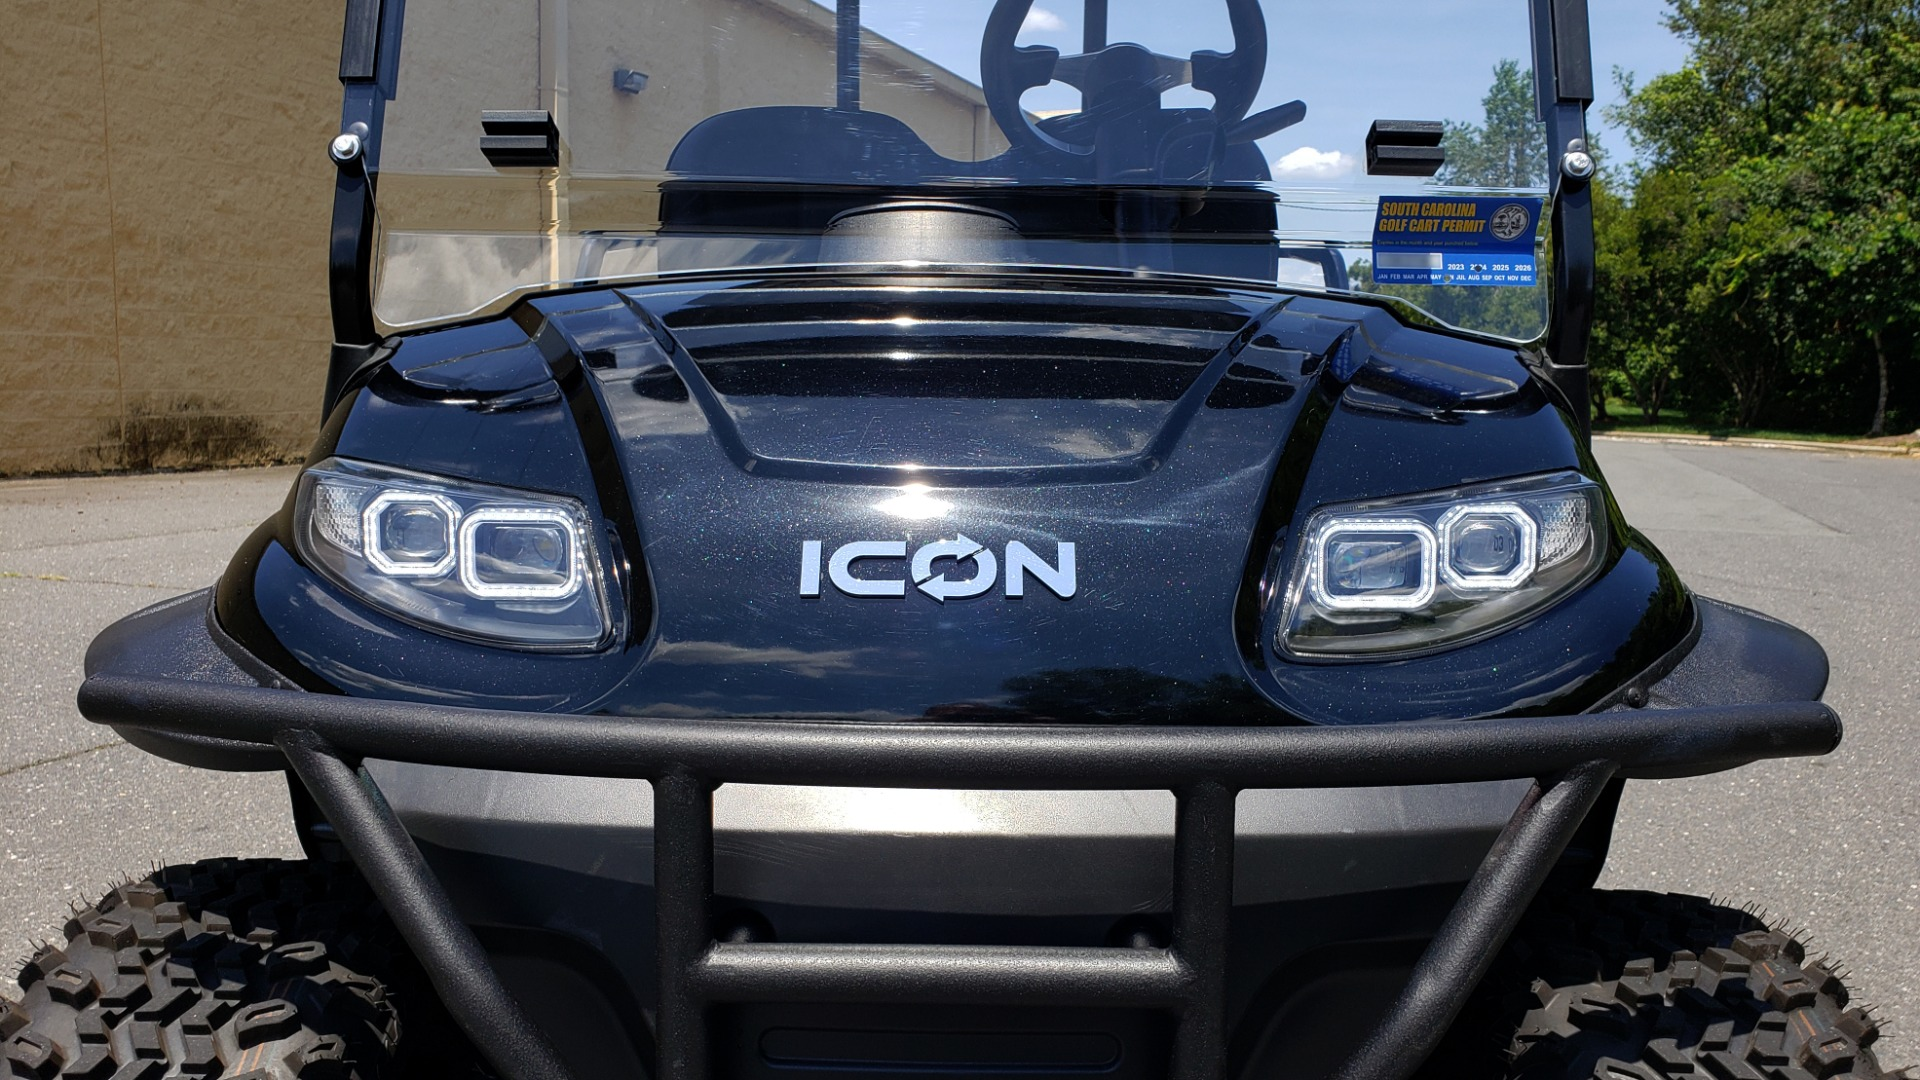 Used 2019 ICON ELECTRIC CAR 3-ROW / 6-PASSENGER / LIFTED for sale $10,900 at Formula Imports in Charlotte NC 28227 19